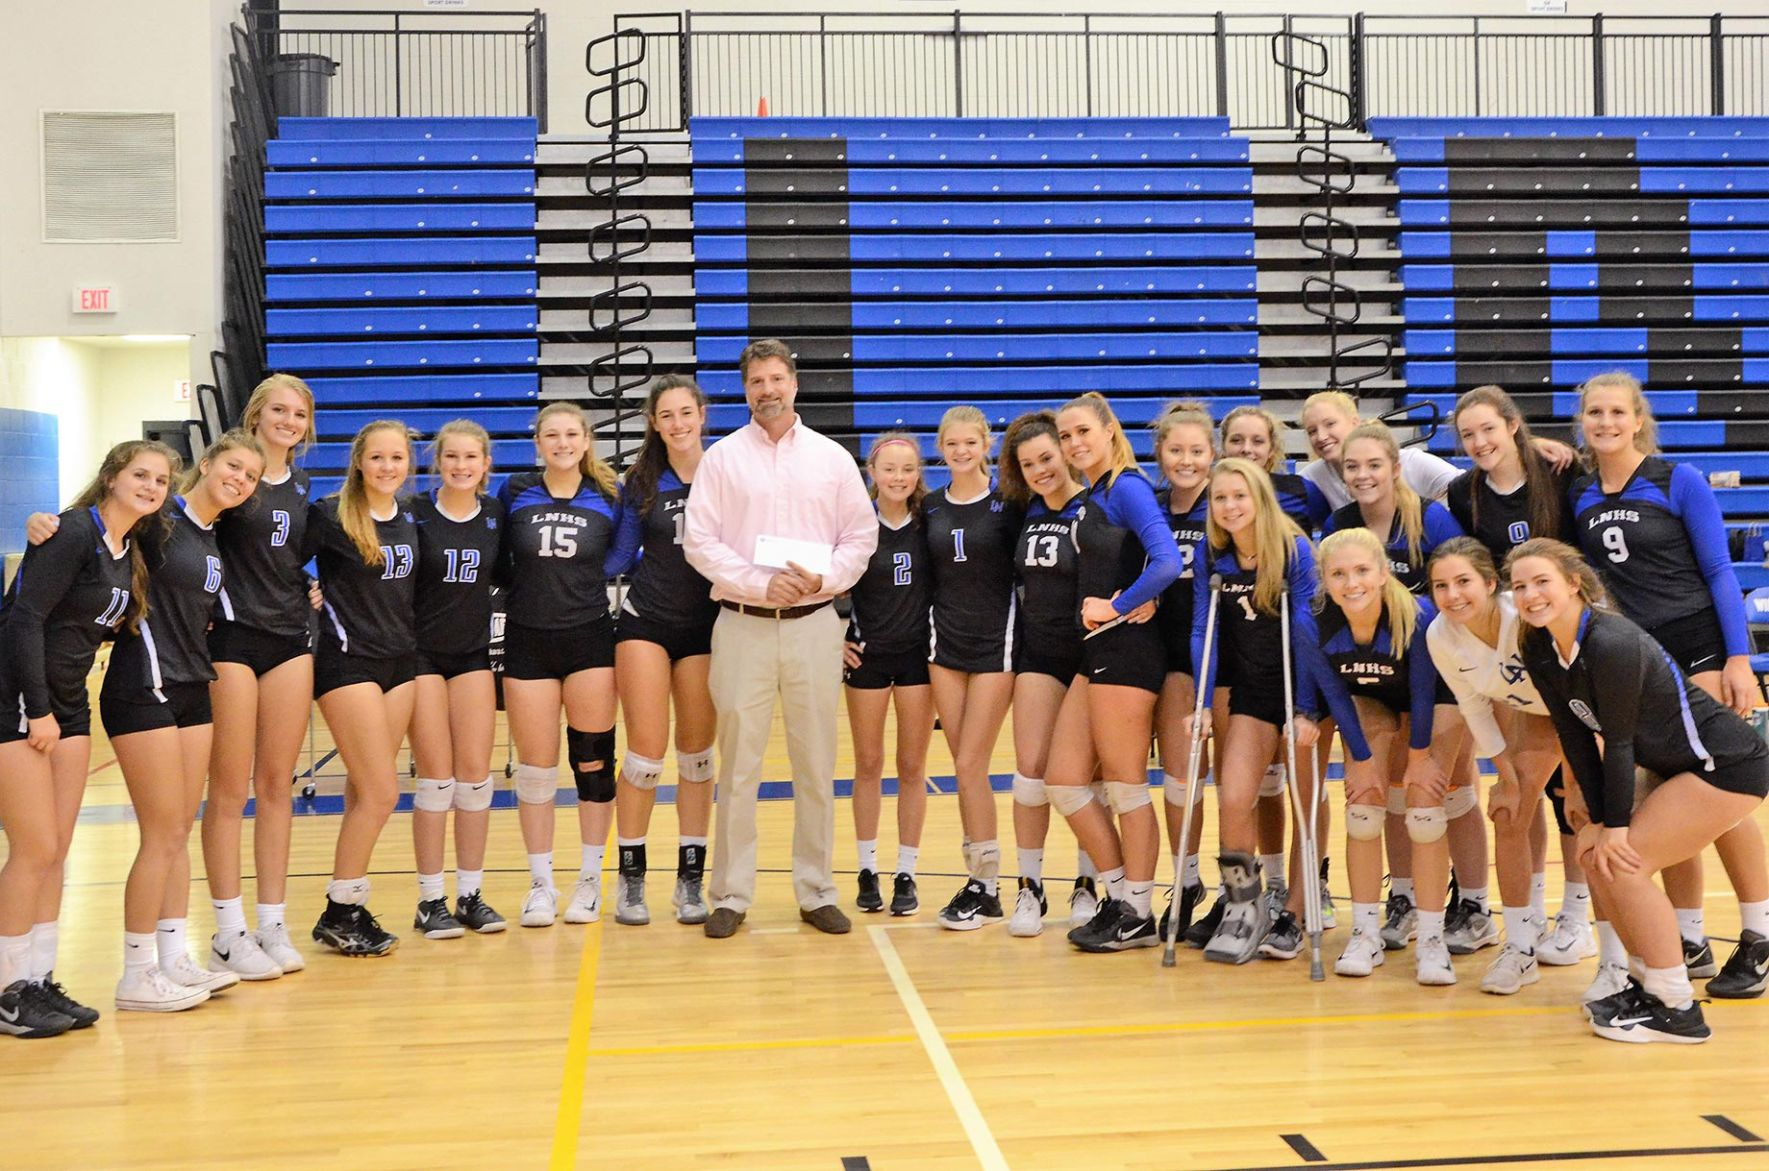 Lake Norman High School Volleyball Dig Pink | Lake Norman With Regard To Lake Norman High School Schedule